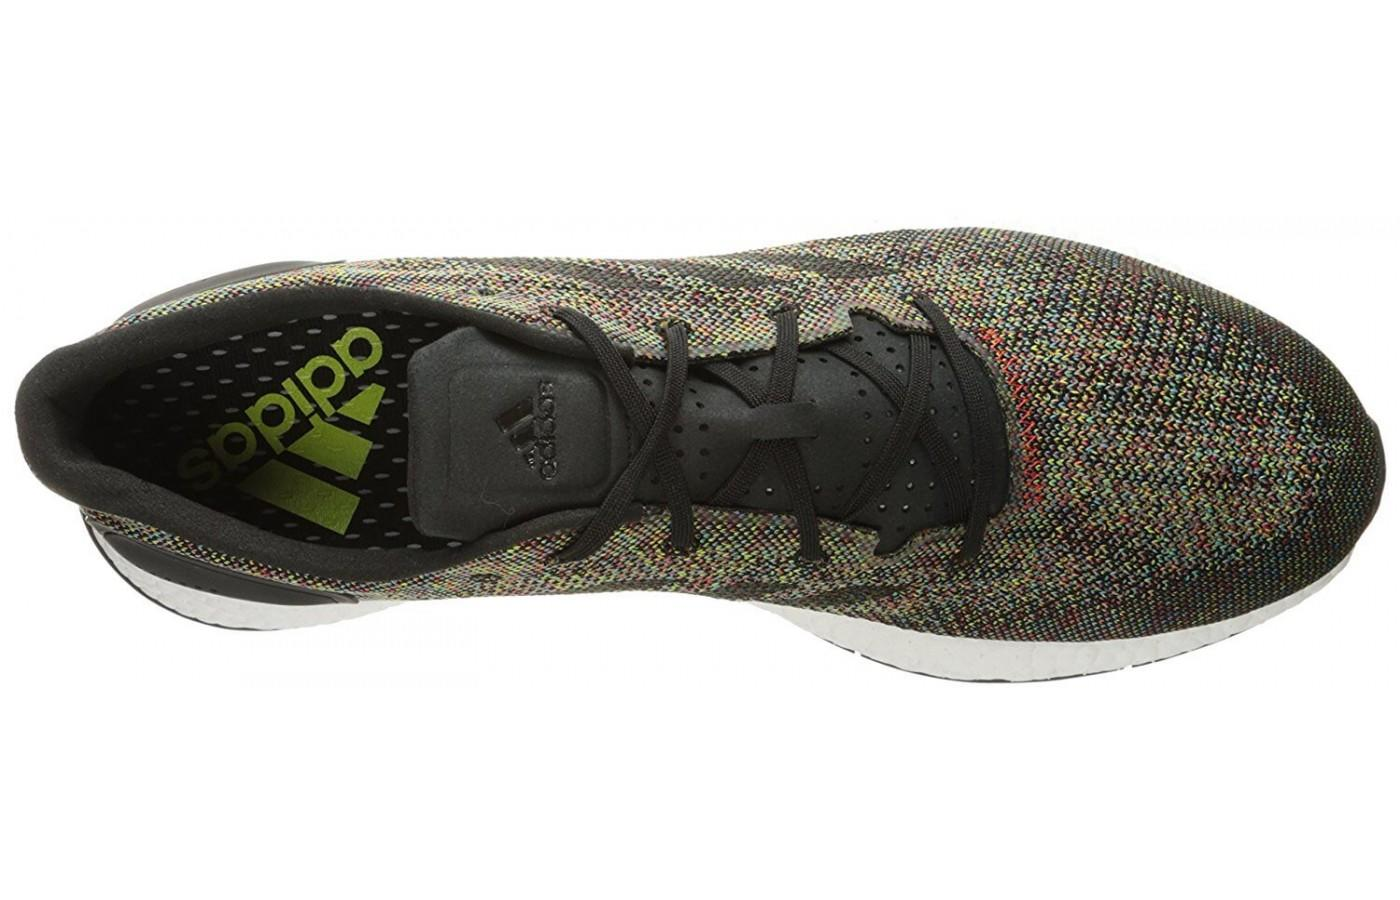 Adidas PureBOOST DPR LTD has a breathable mesh upper